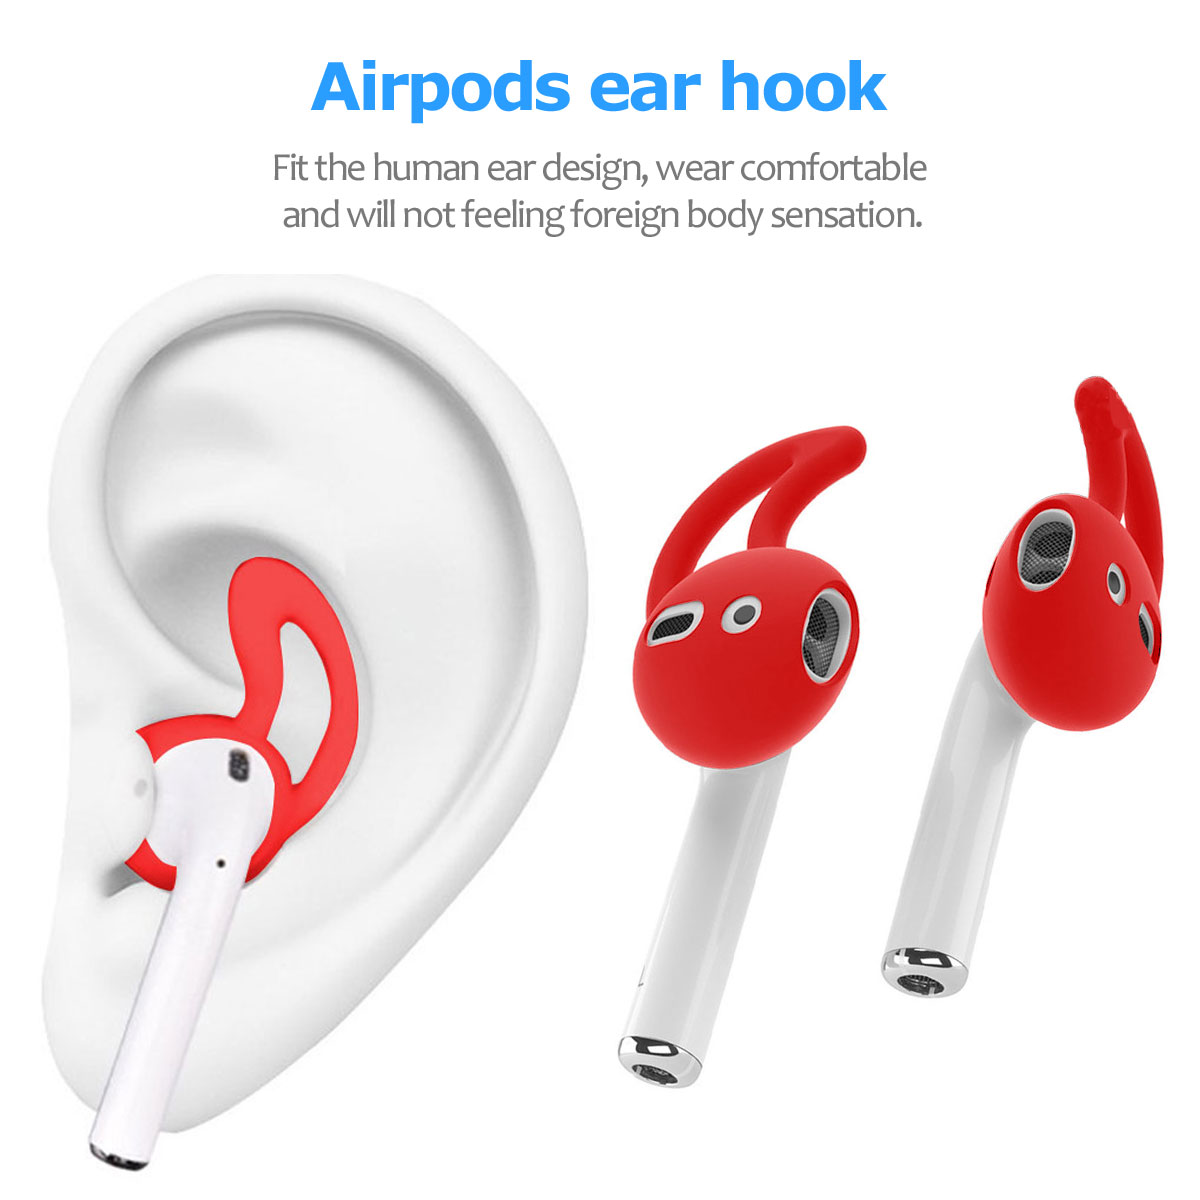 Silicone-Ruggged-Case-Cover-Earbuds-For-Apple-AirPods-2nd-Gen-Accessories-2019 thumbnail 33